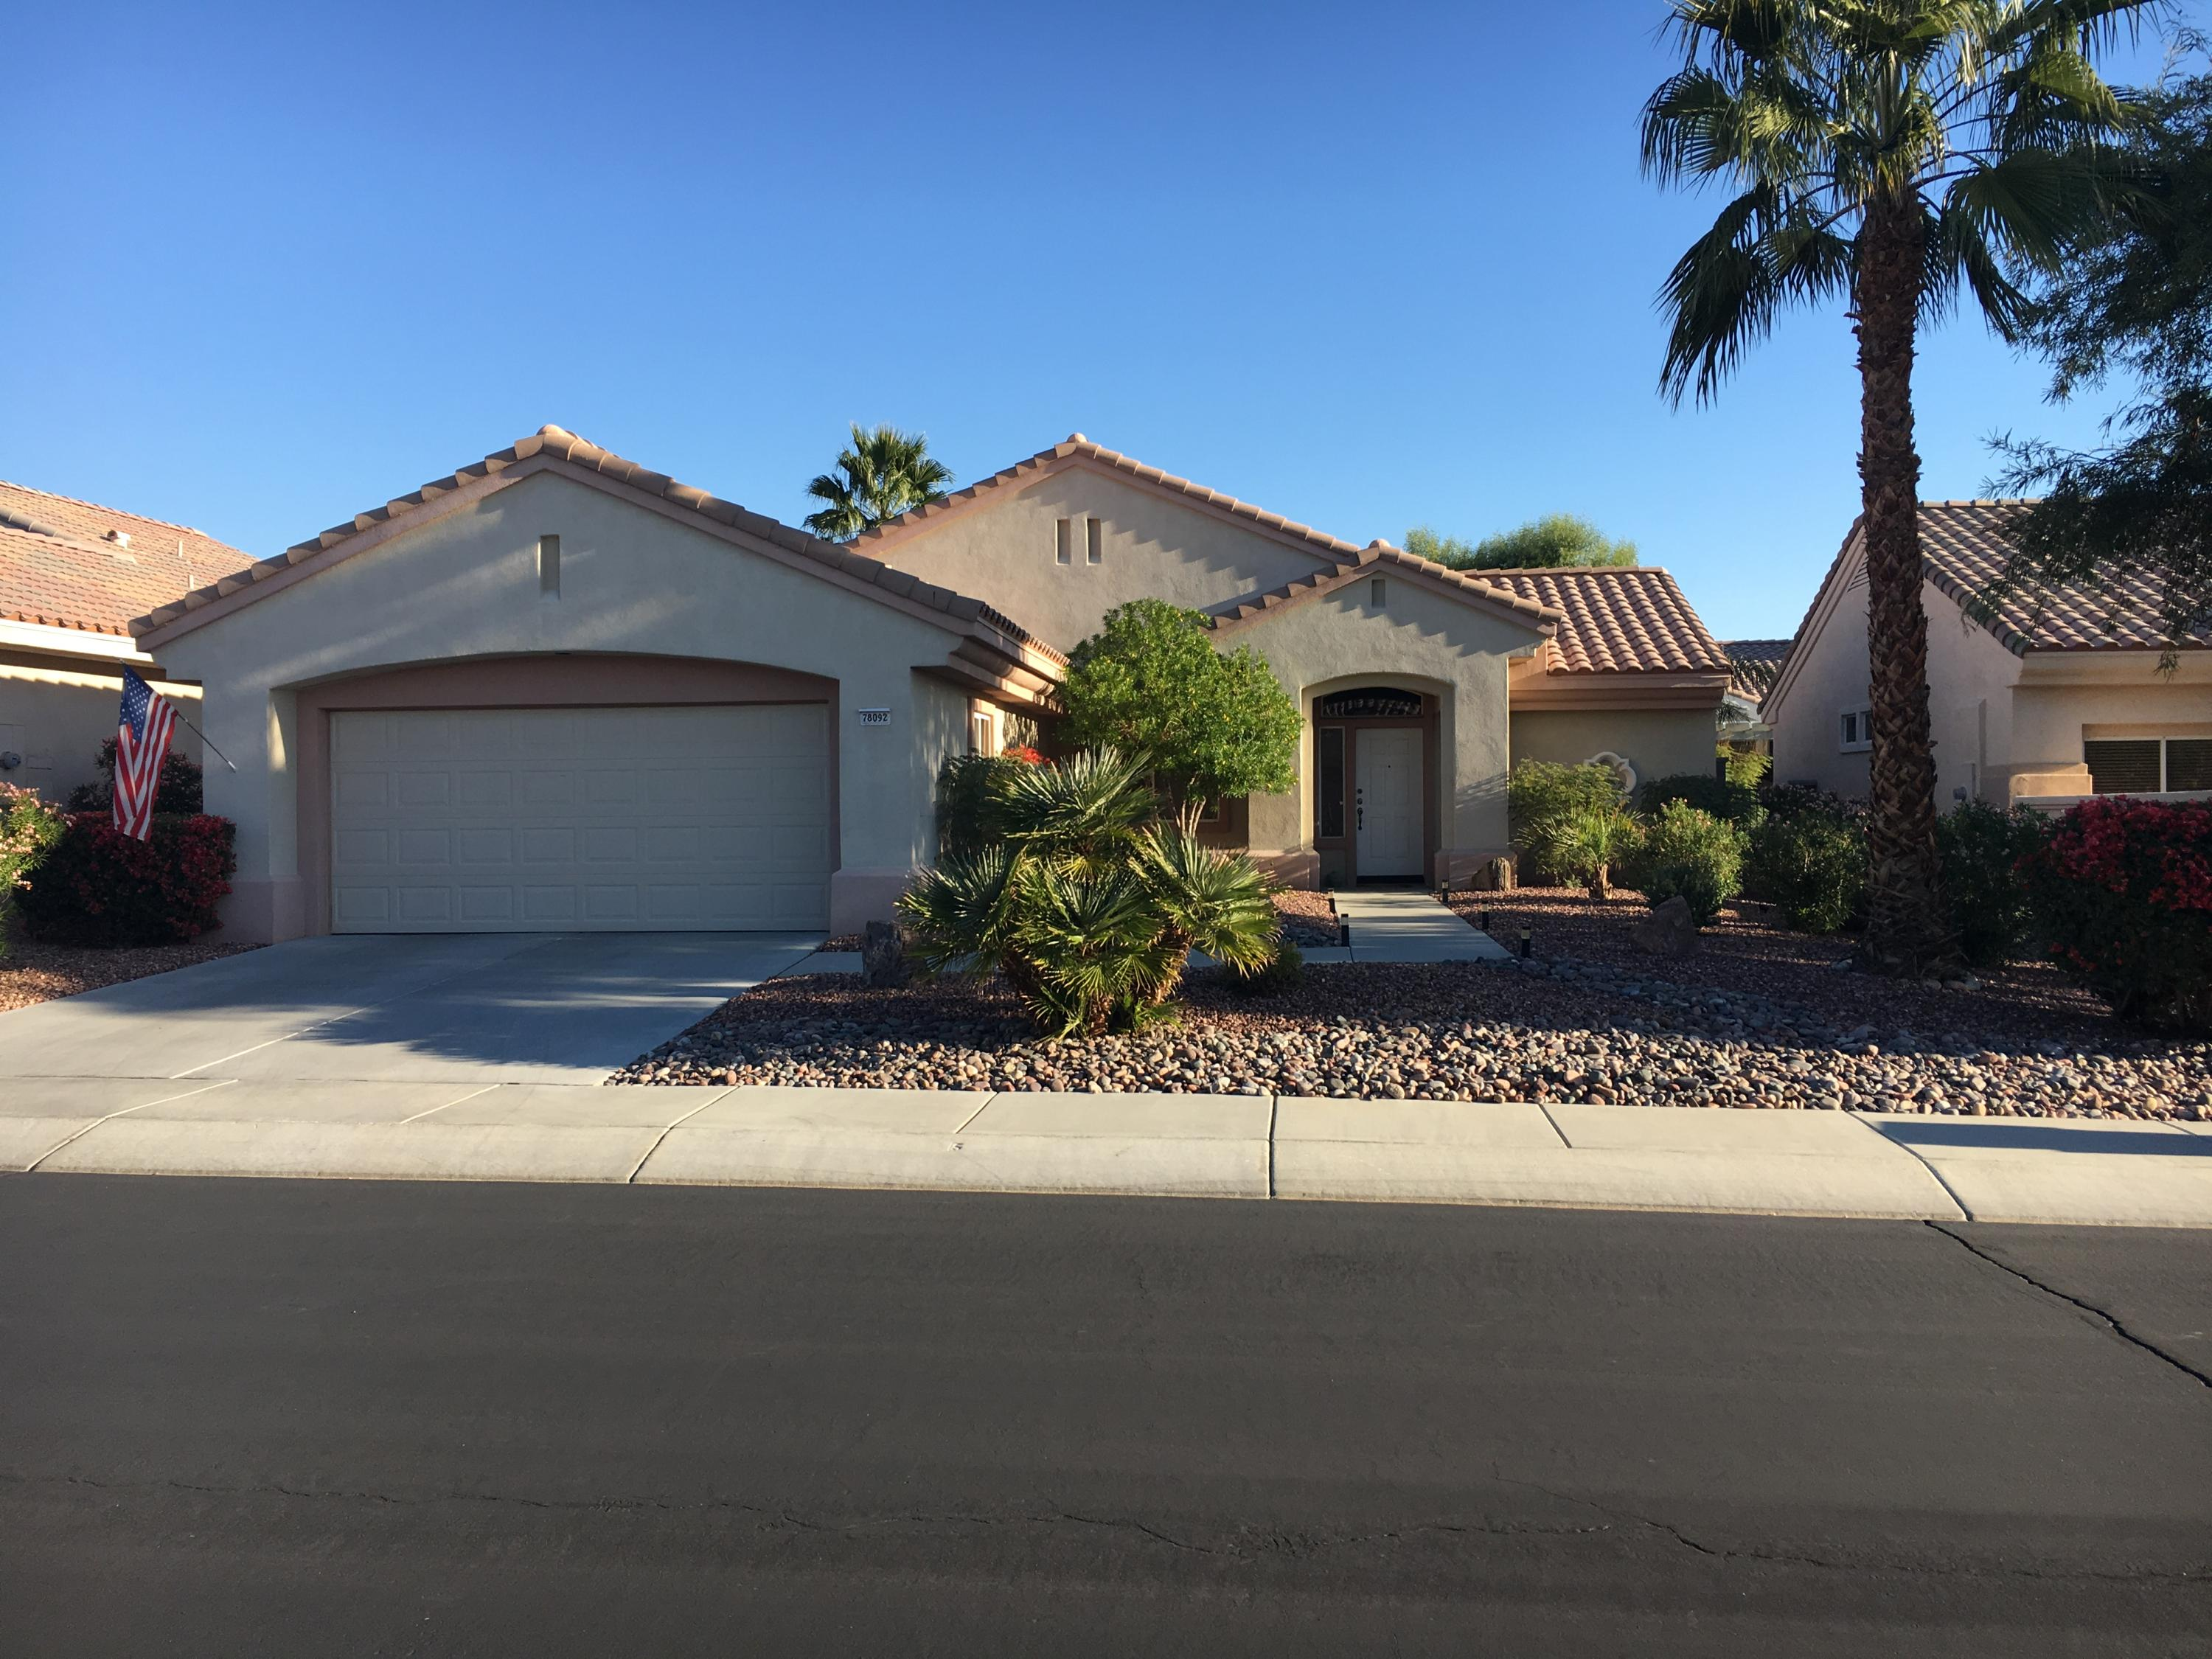 Photo of 78092 Jalousie Drive, Palm Desert, CA 92211